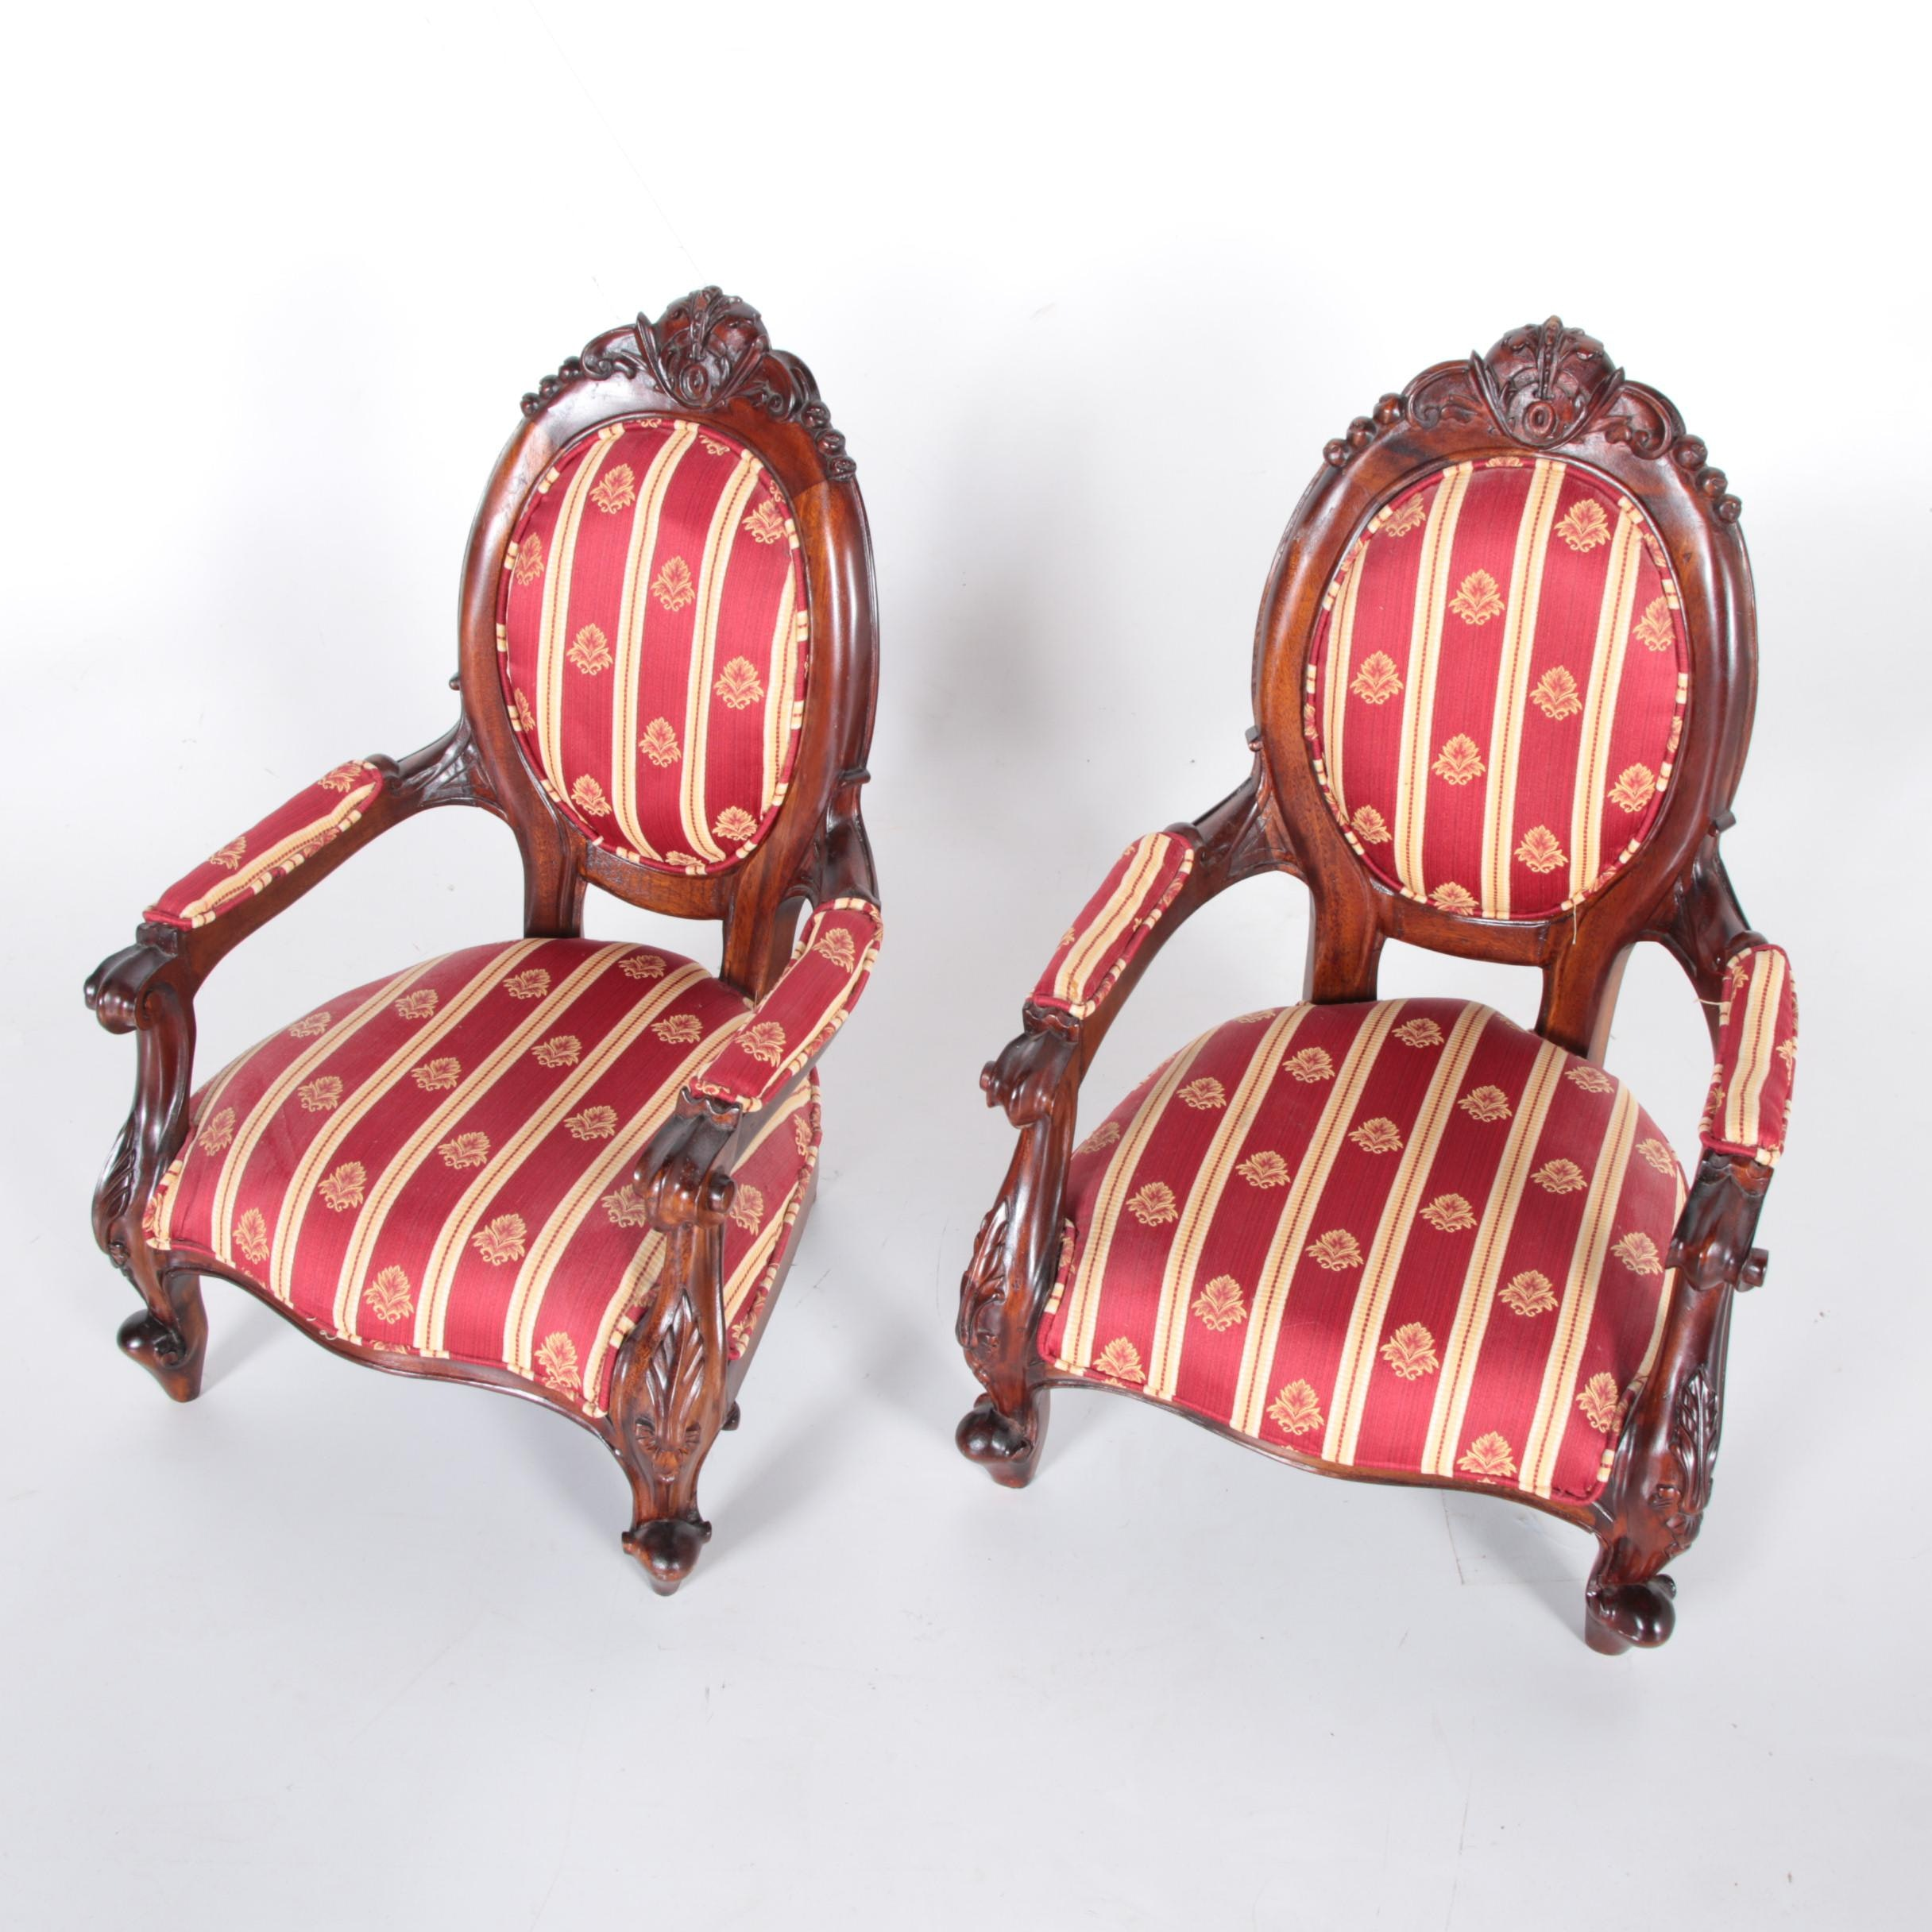 Pair of Louis XV Style Children's Chairs